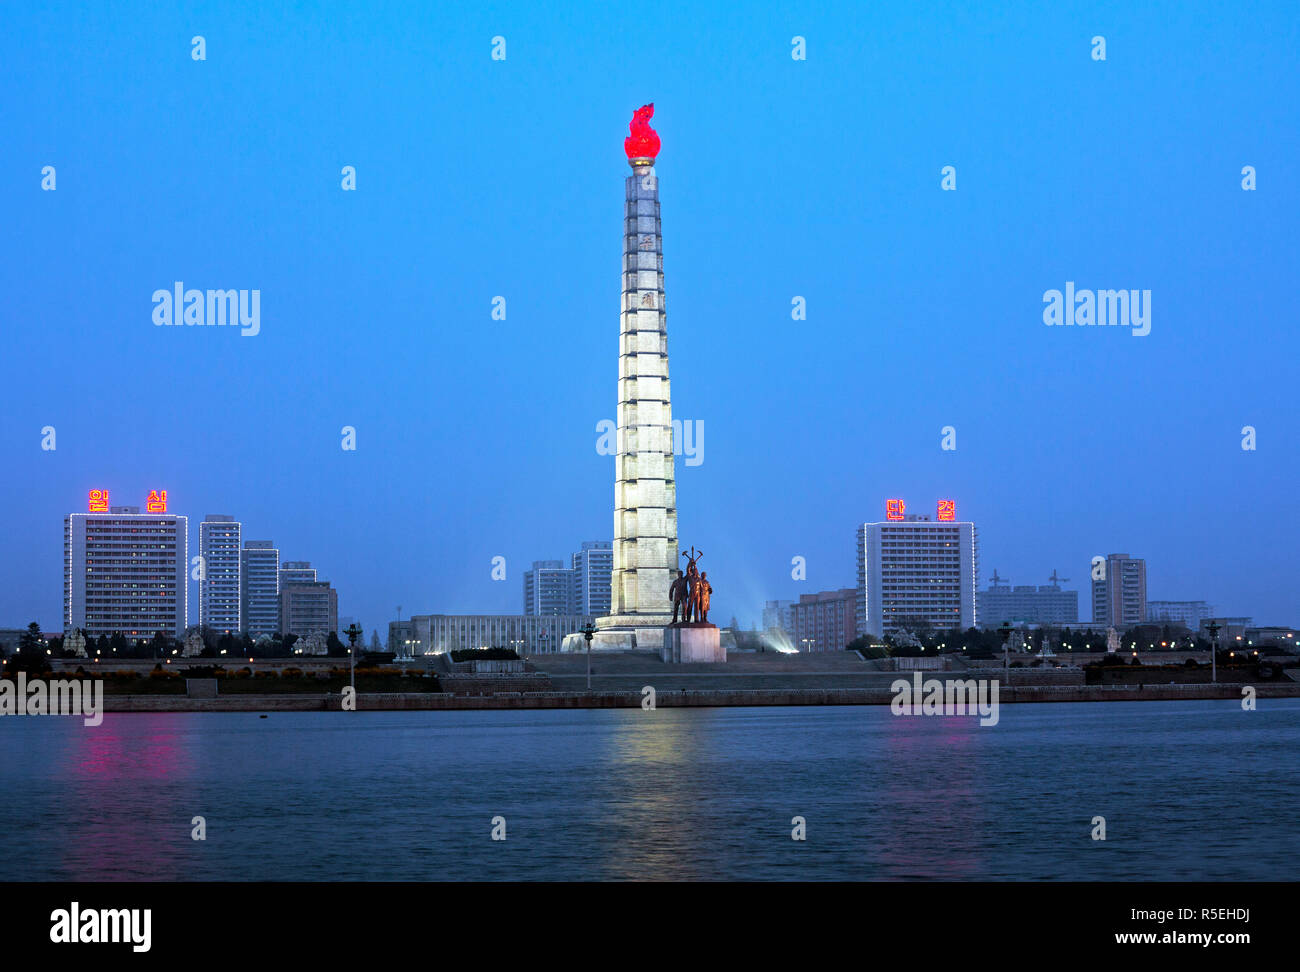 Democratic Peoples's Republic of Korea (DPRK), North Korea, Juche Tower and the Taedong river - Stock Image